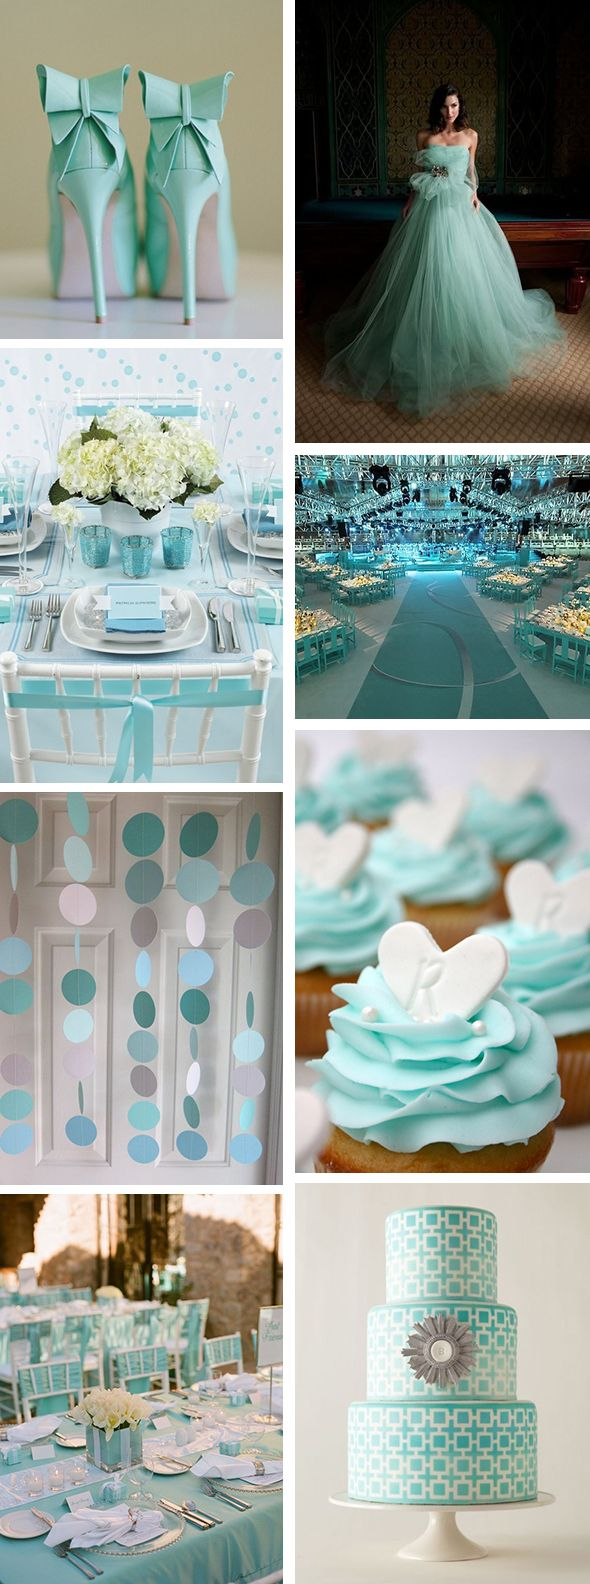 Tiffany Blue Weddings - but I still want a white dress instead!